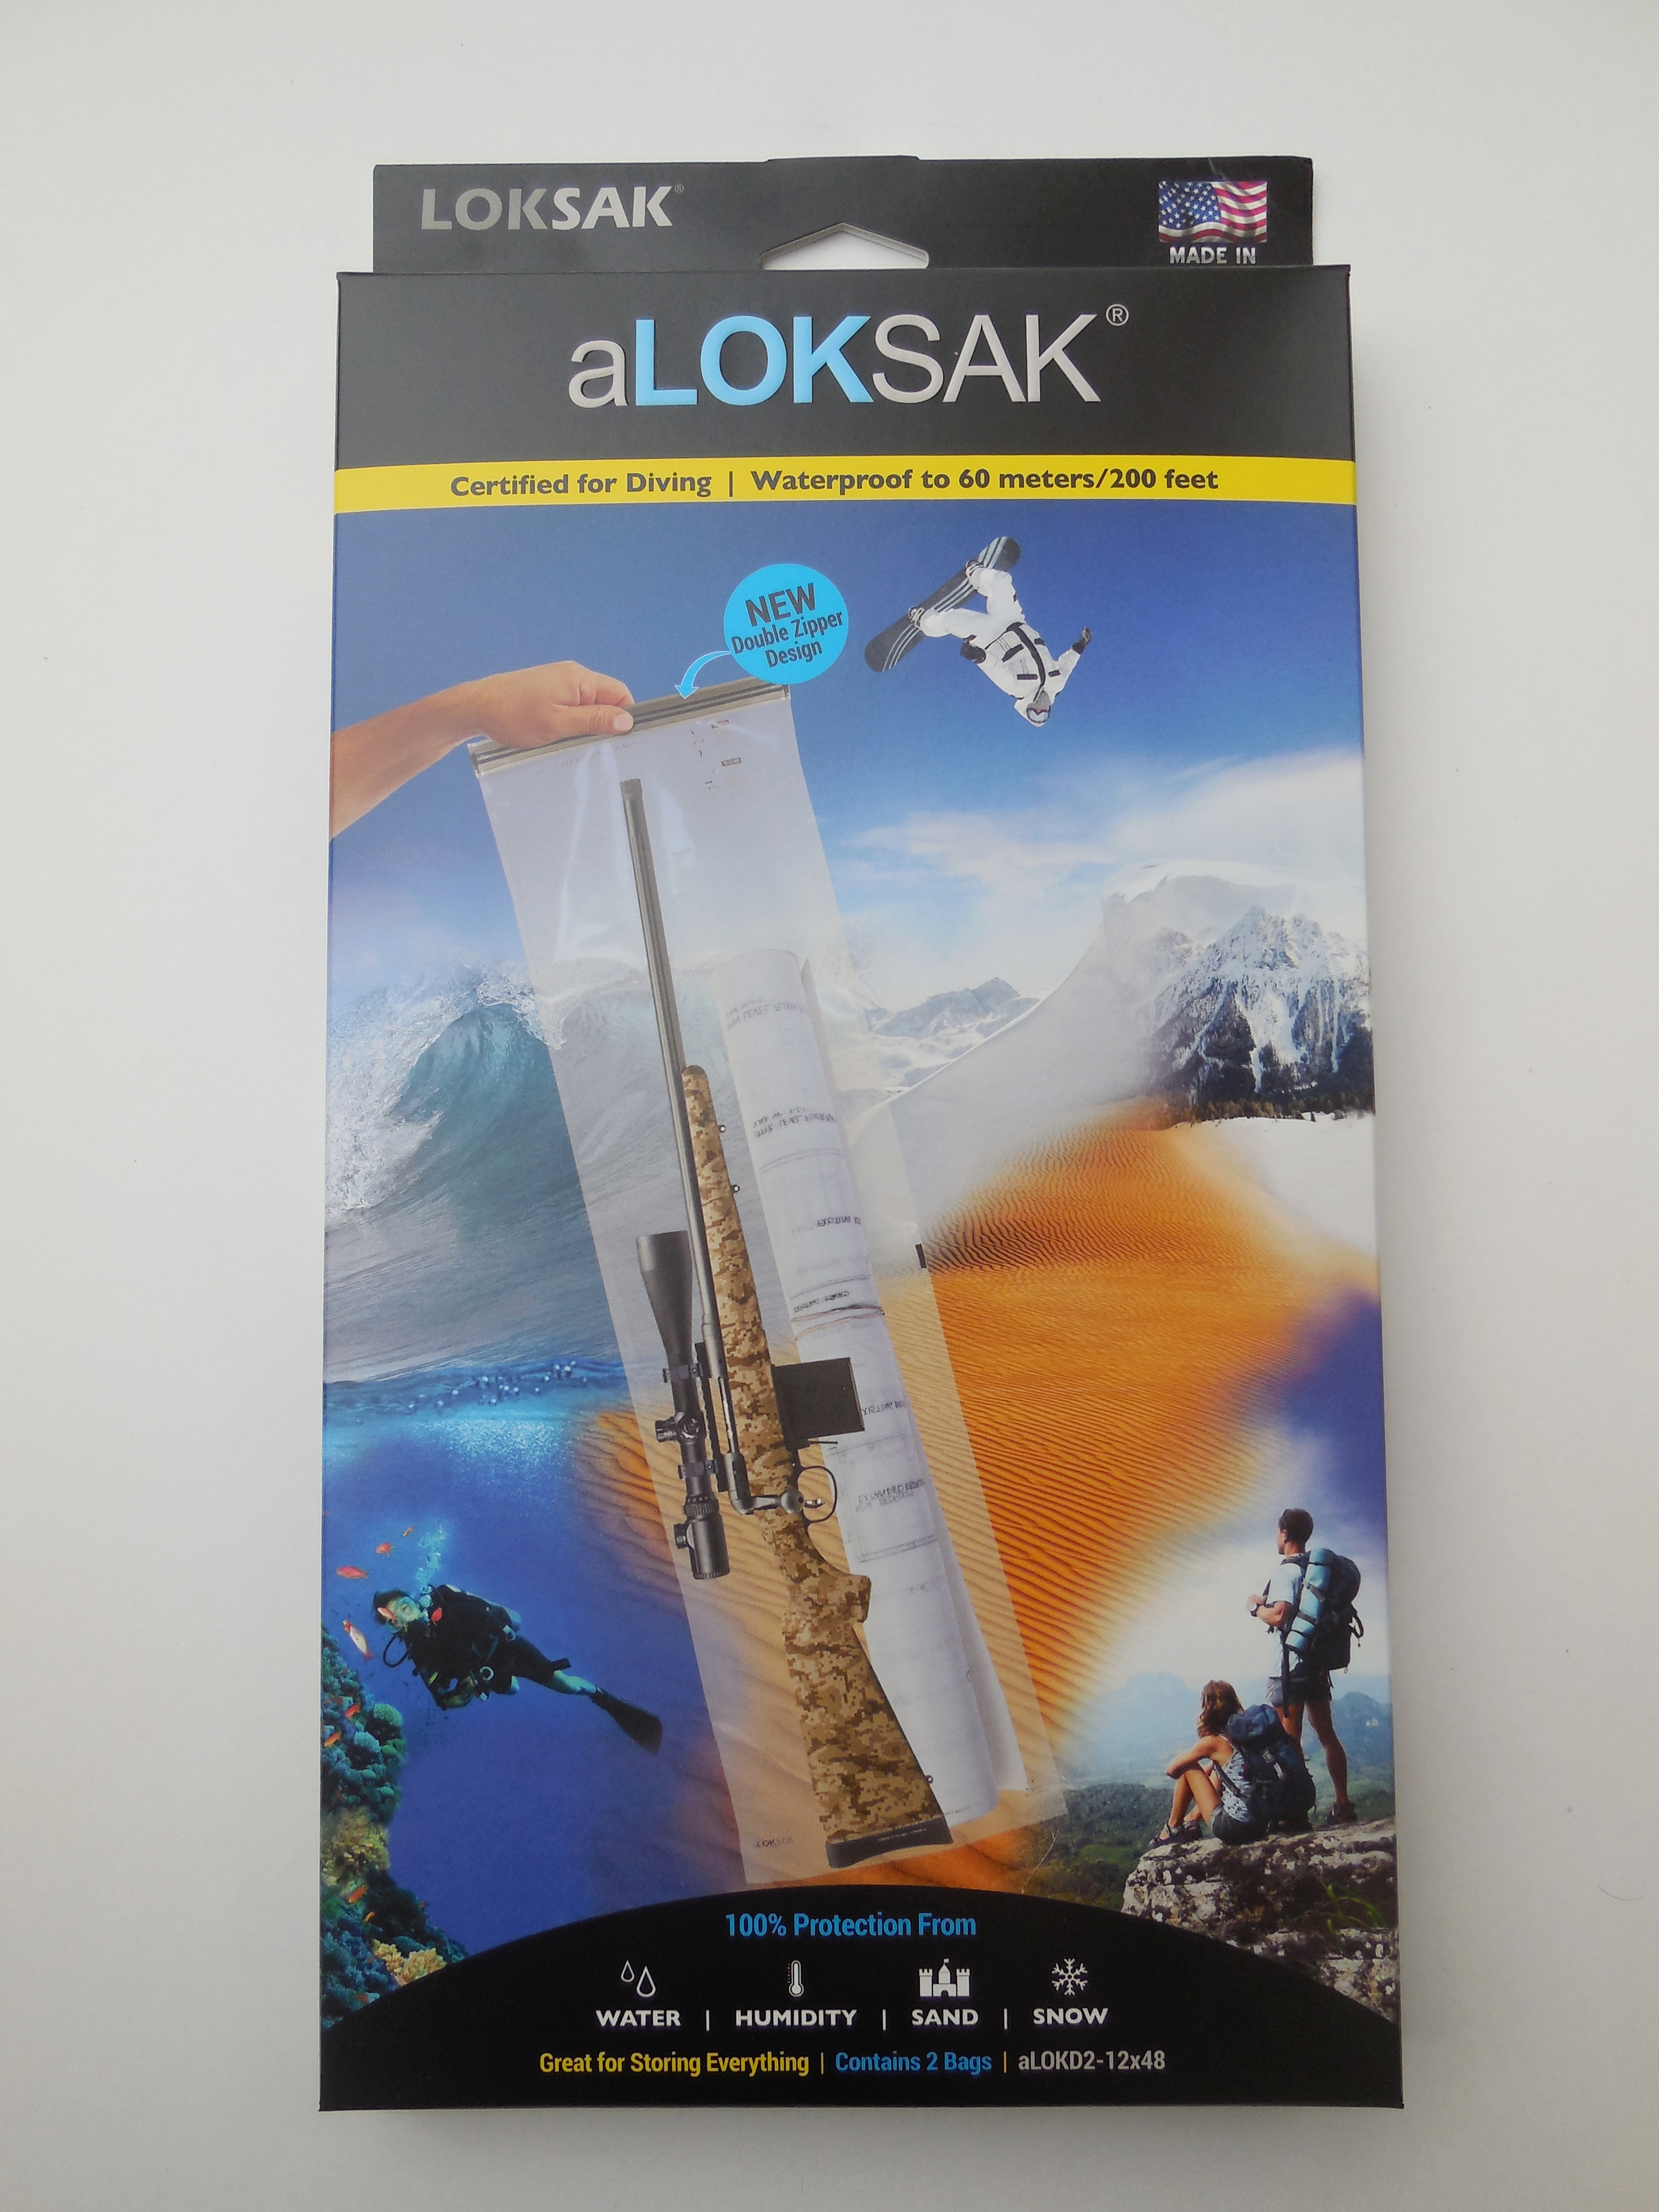 ALOKD2-12x48 - LOKSAK 2 each of 12